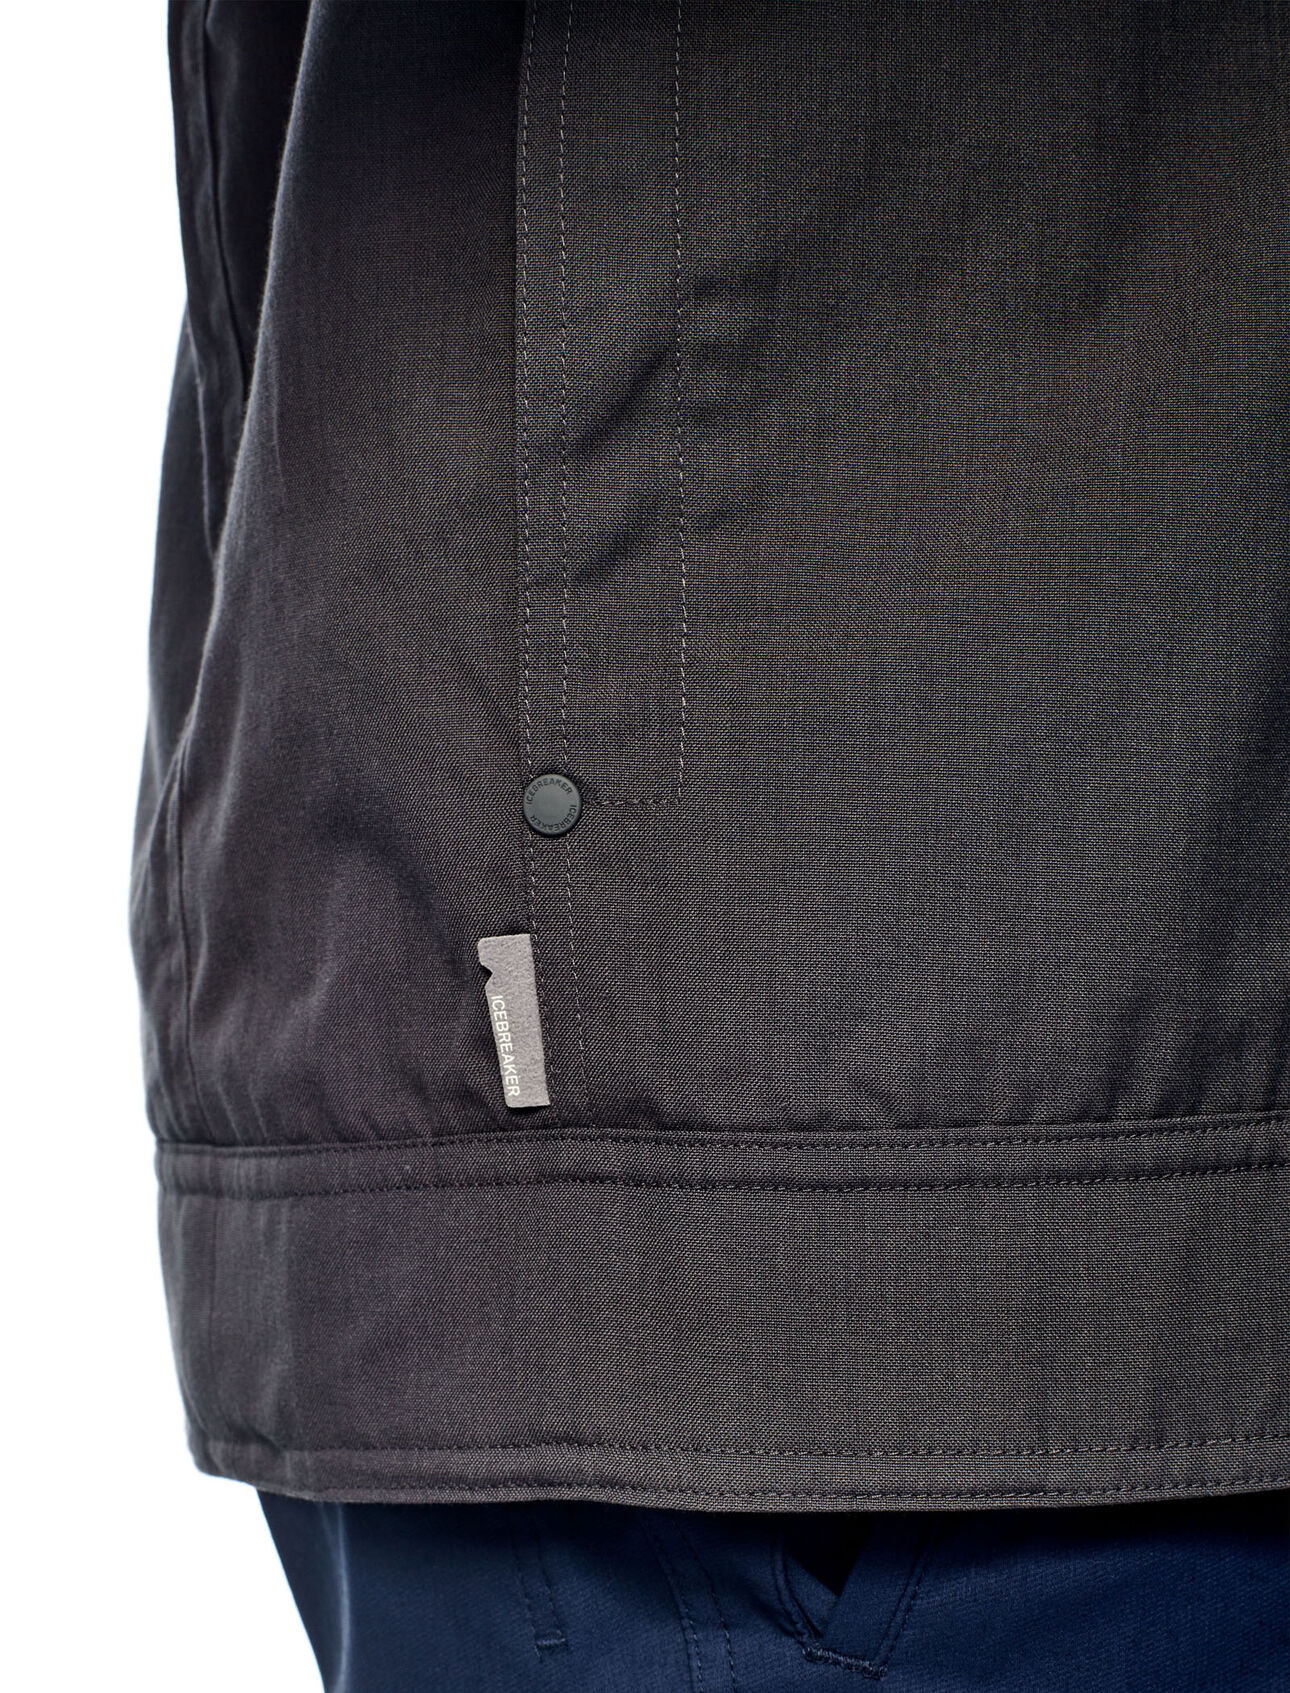 540cab33d77 Escape Thermo Jacket - Icebreaker (AU)